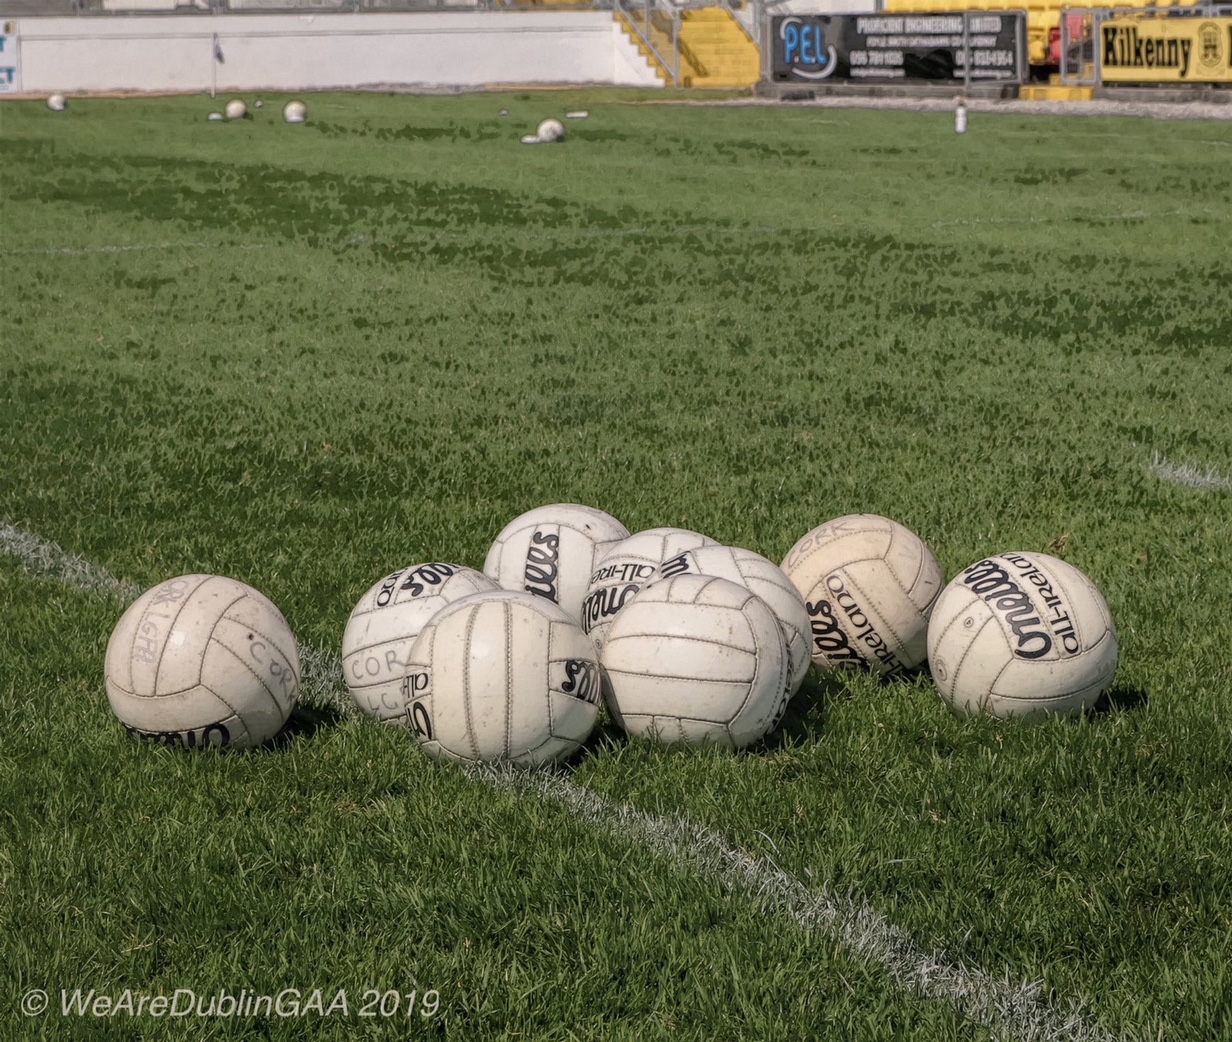 Gaelic footballs on a pitch at a ladies football match, the LGFA have released a statement to clarify issues around the change in venue for the All Ireland semi final between Cork and Galway